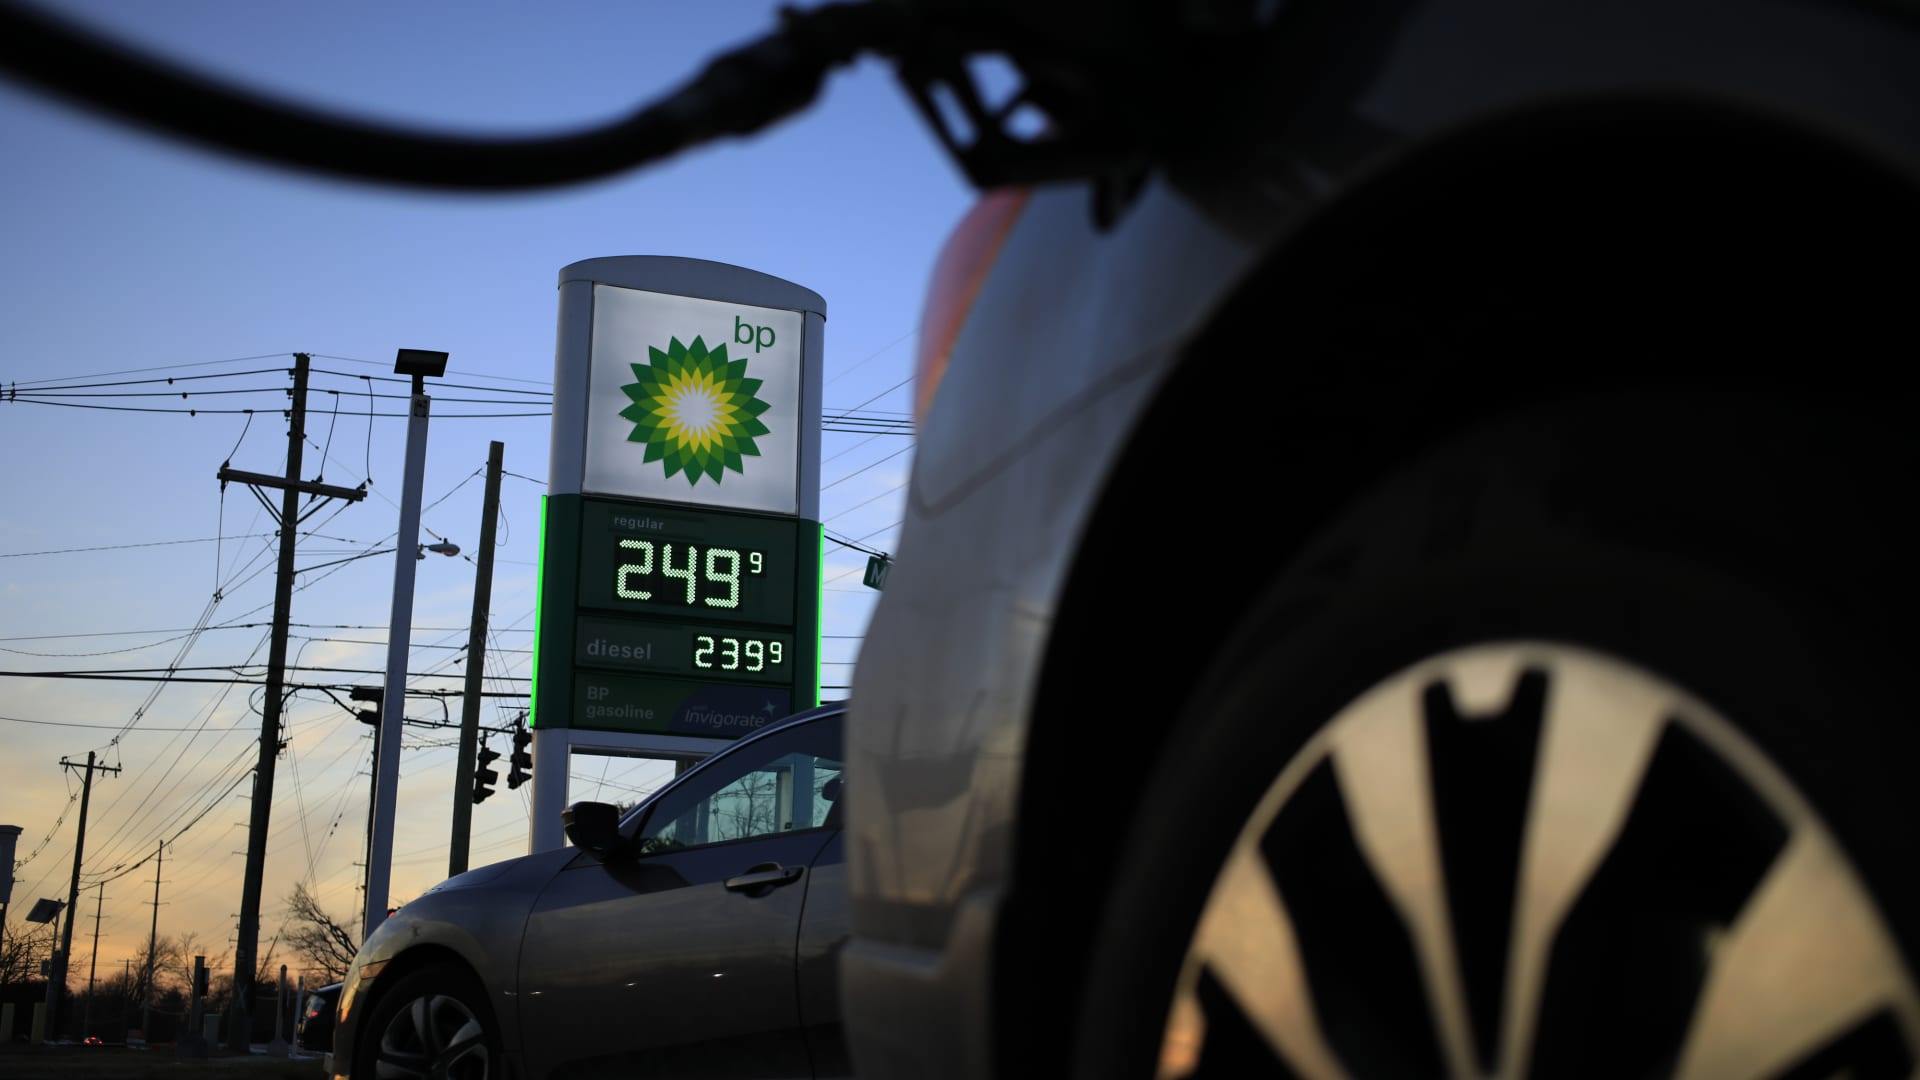 Fuel prices on a sign at a BP gas station in Louisville, Kentucky, on Friday, Jan. 29, 2021.